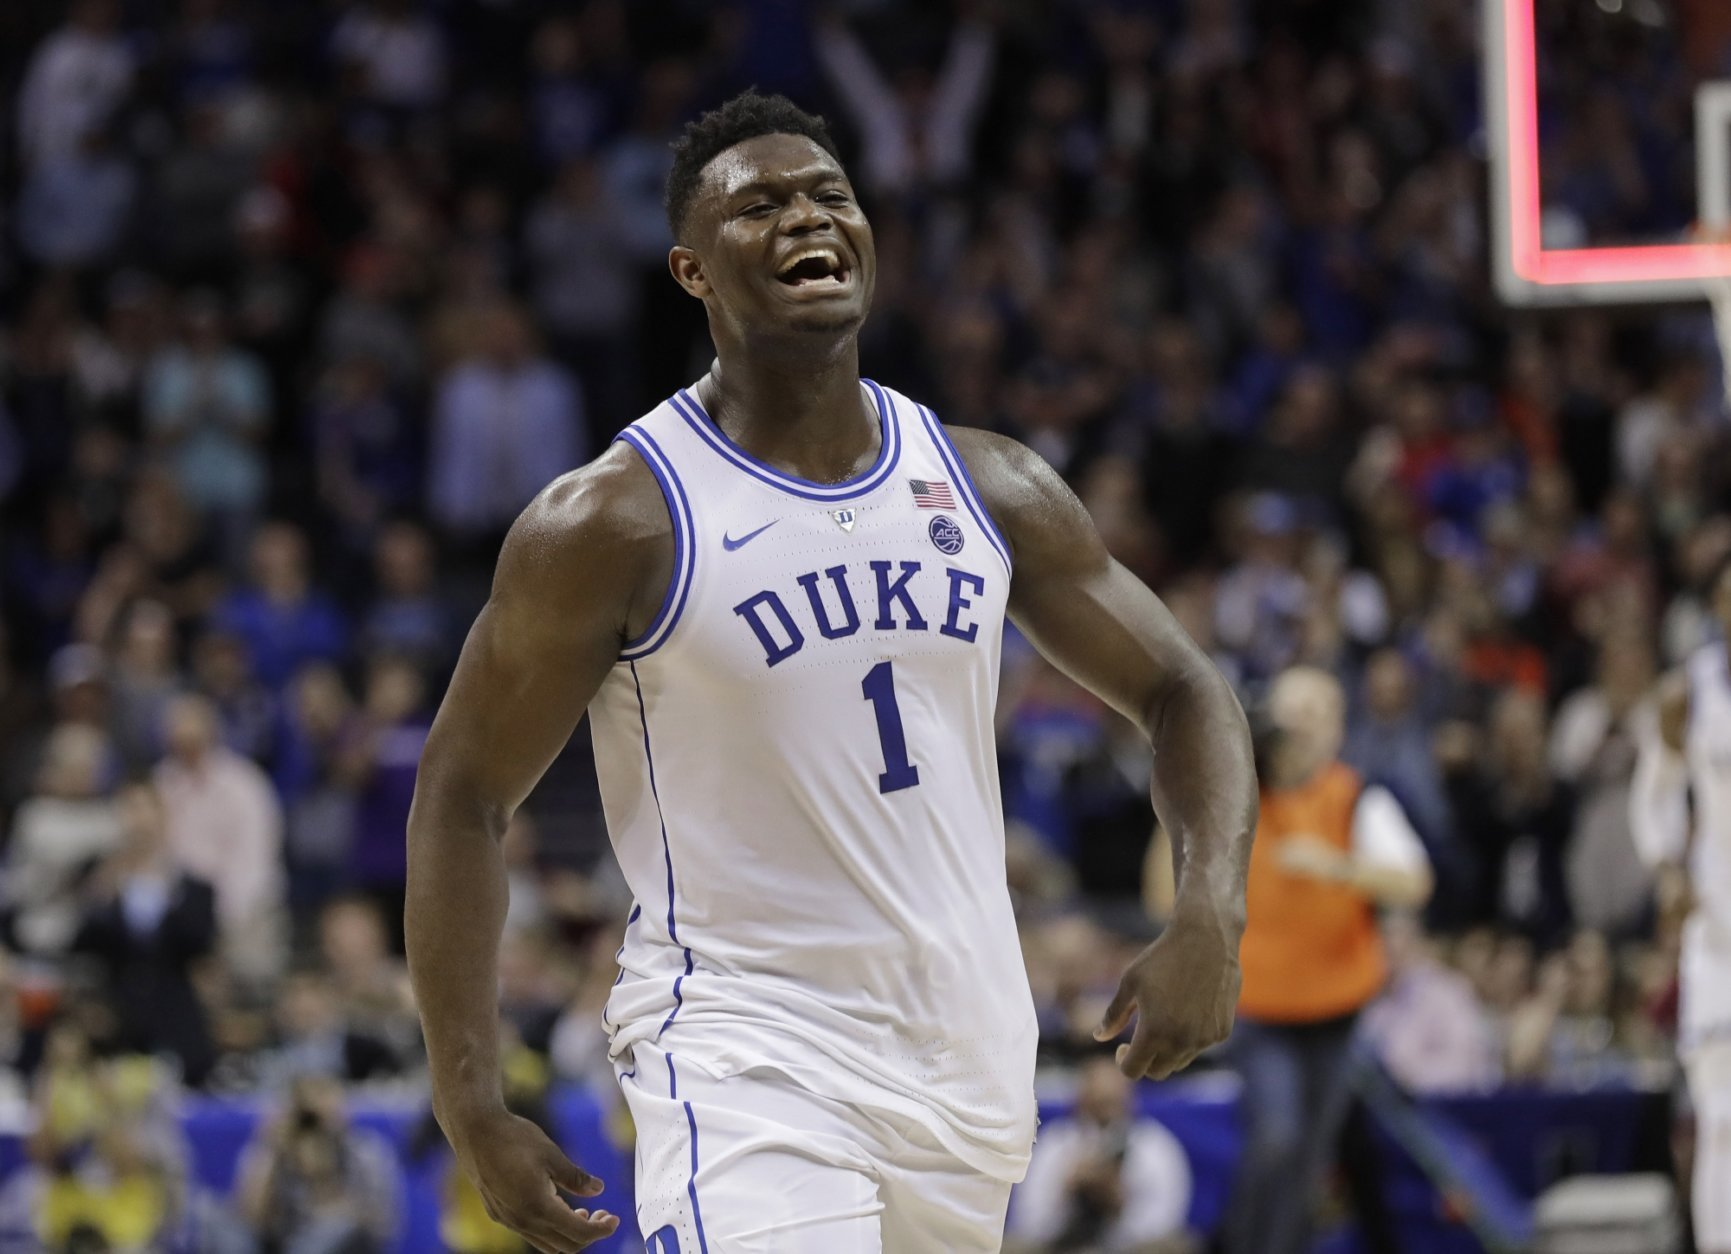 Duke's Zion Williamson (1) celebrates after Duke defeated Florida State in the NCAA college basketball championship game of the Atlantic Coast Conference tournament in Charlotte, N.C., Saturday, March 16, 2019. (AP Photo/Nell Redmond)